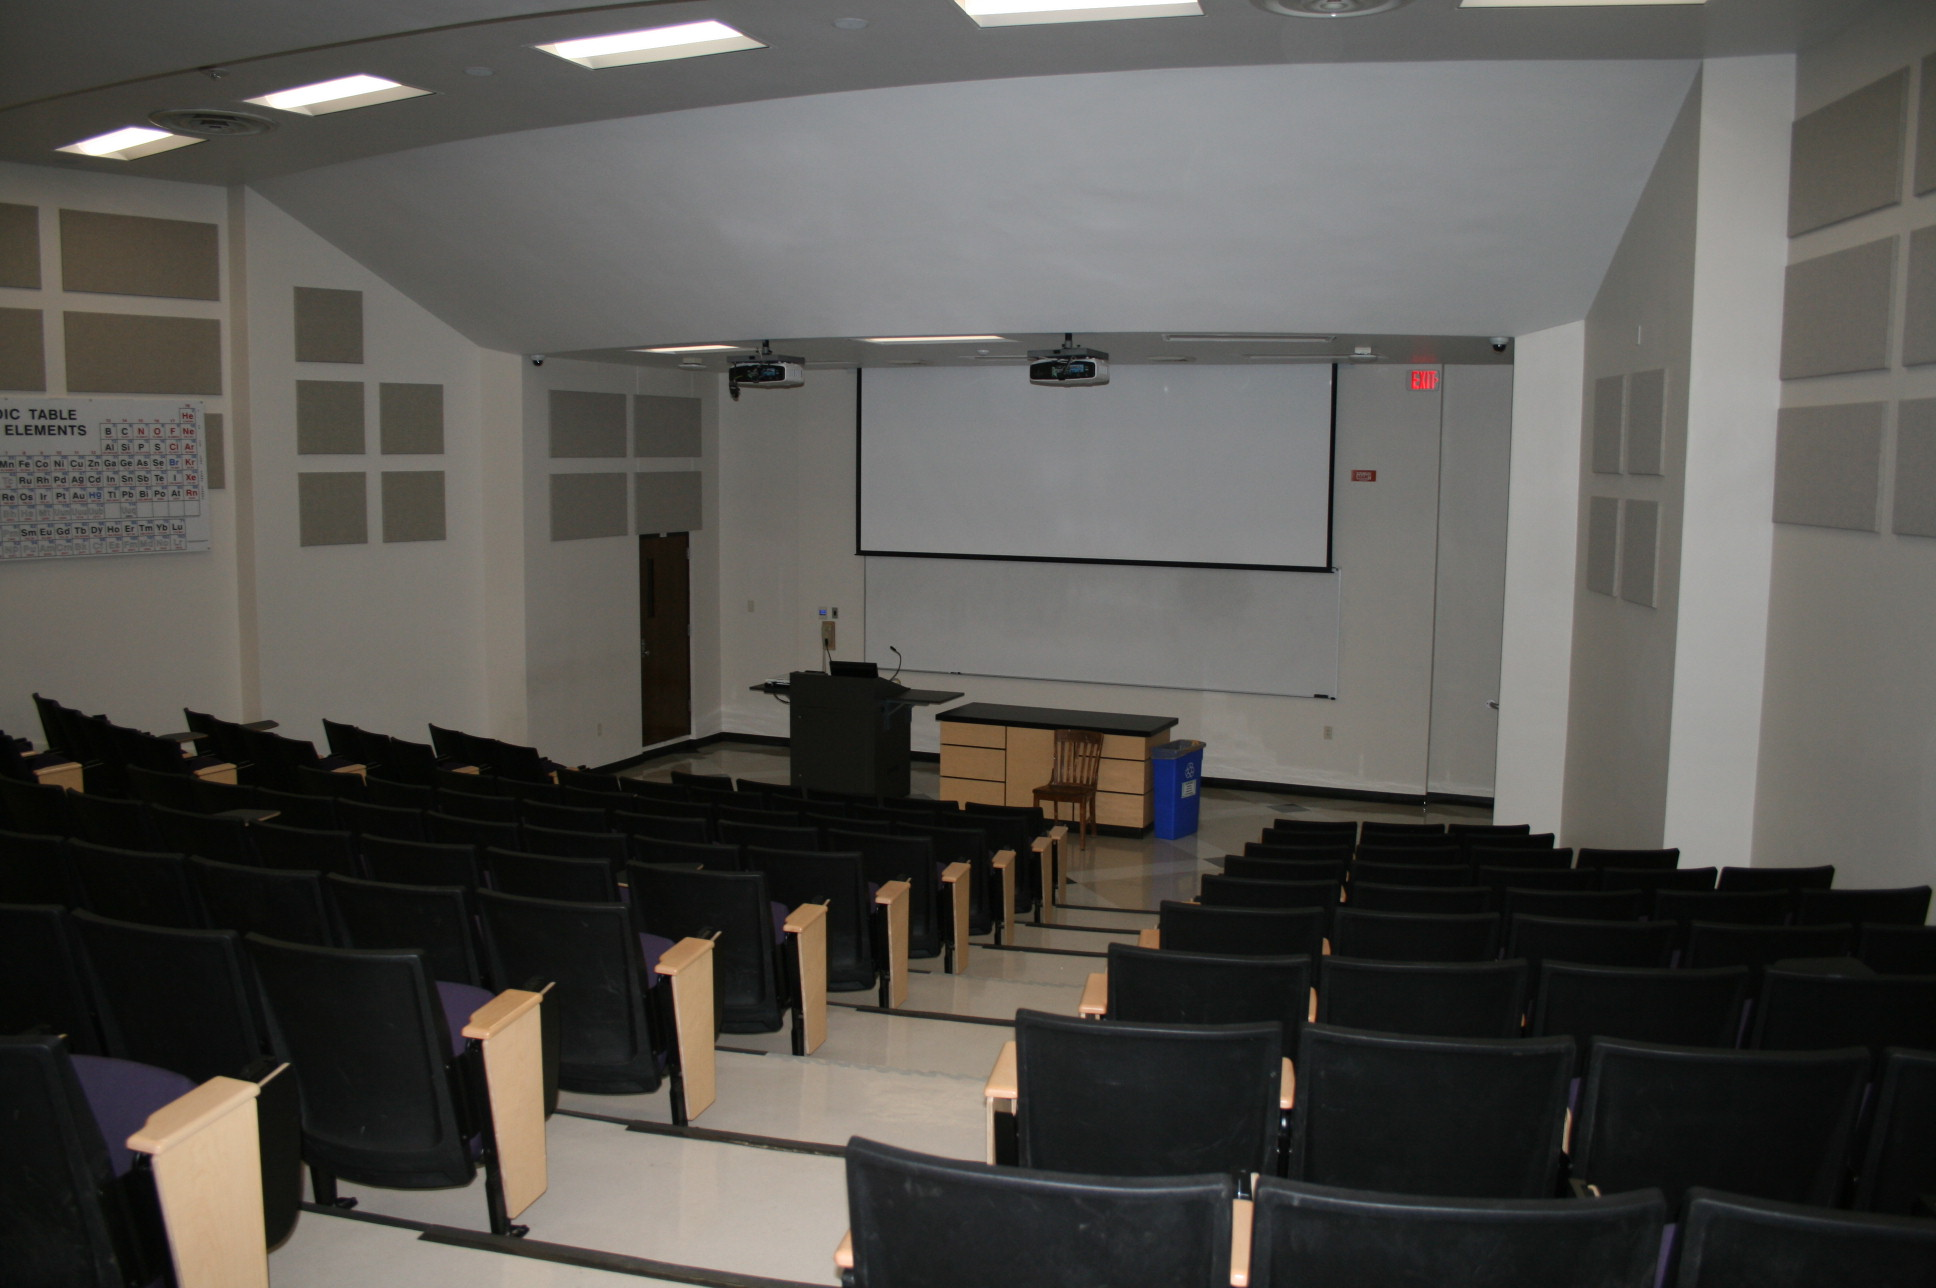 Williams 102 from the back of the classroom